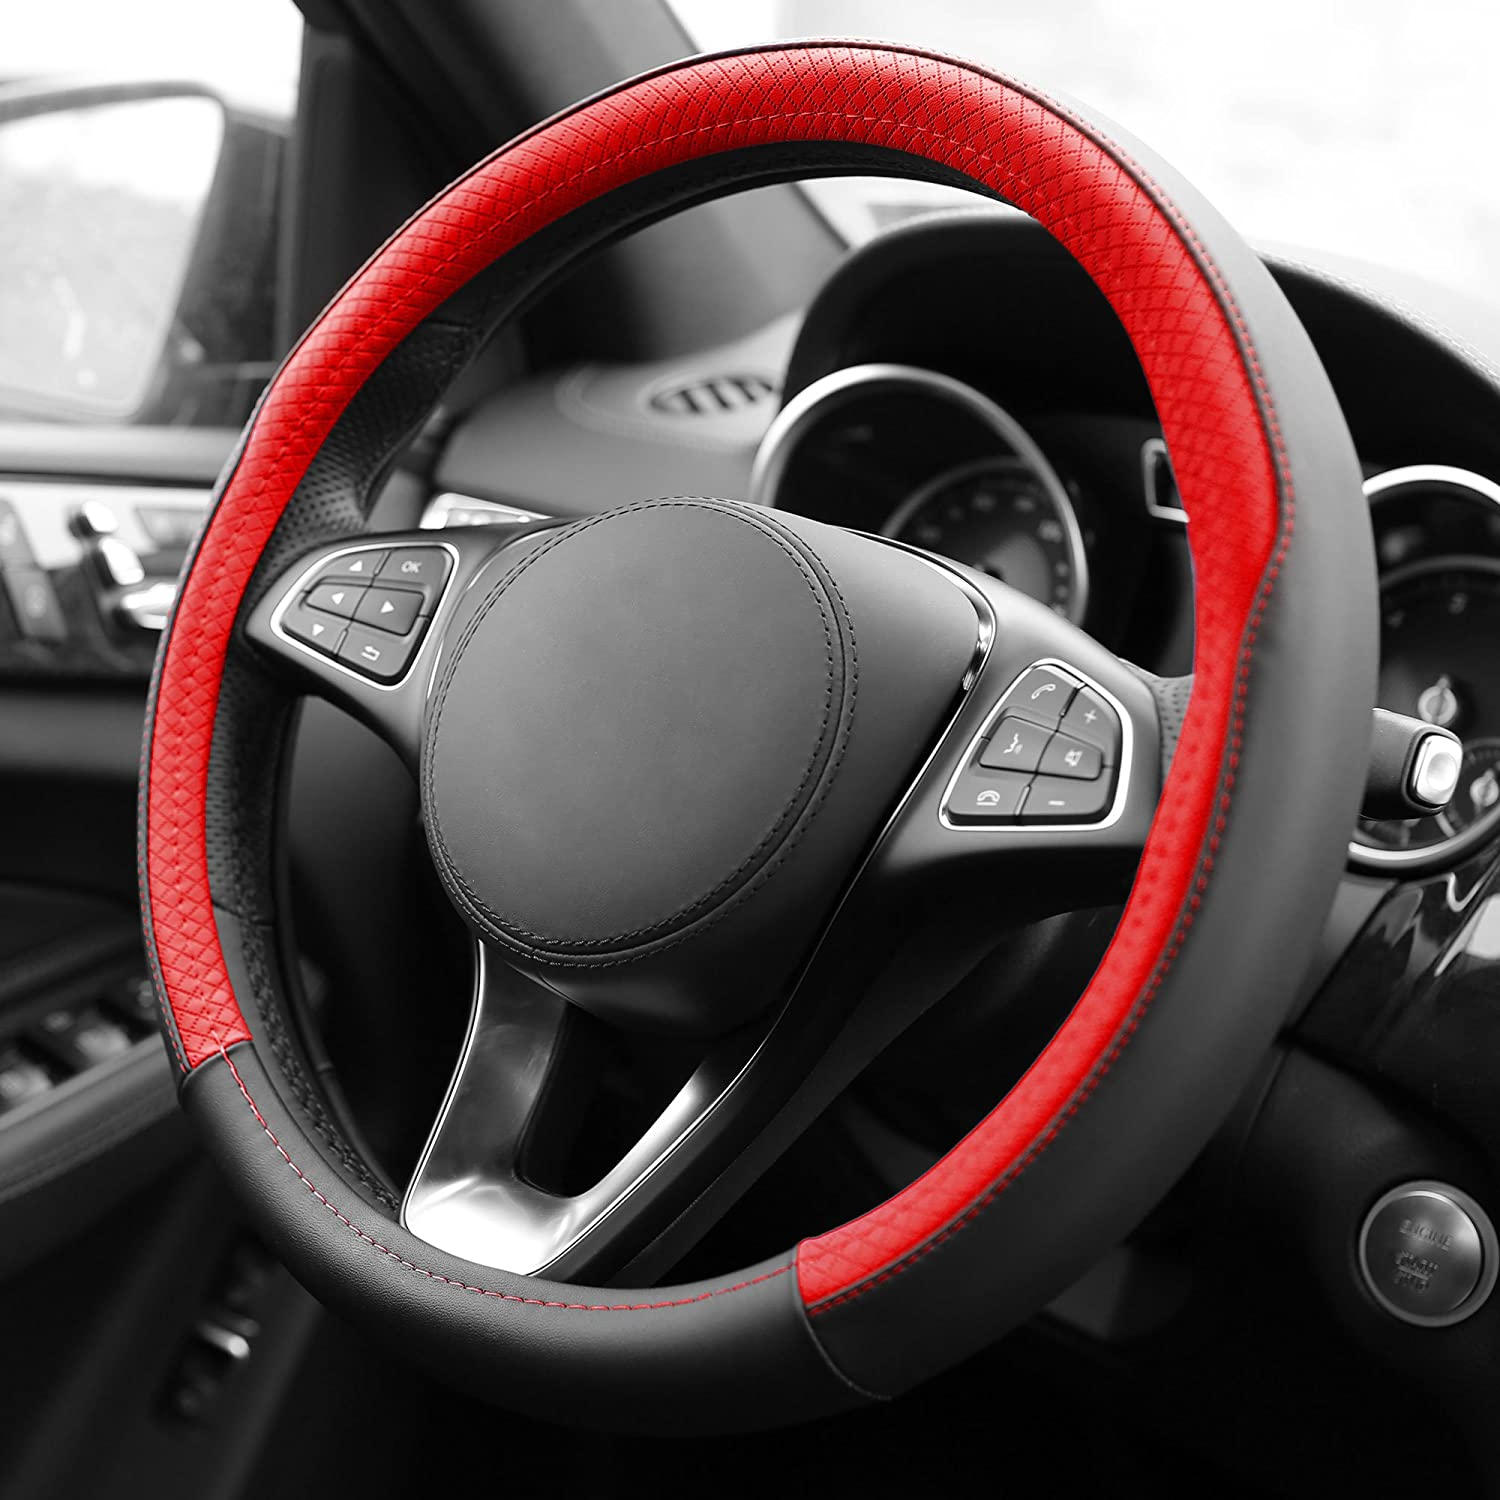 FH Group FH2009PURPLE Geometric Chic Genuine Leather Steering Wheel Cover, 1 Pack